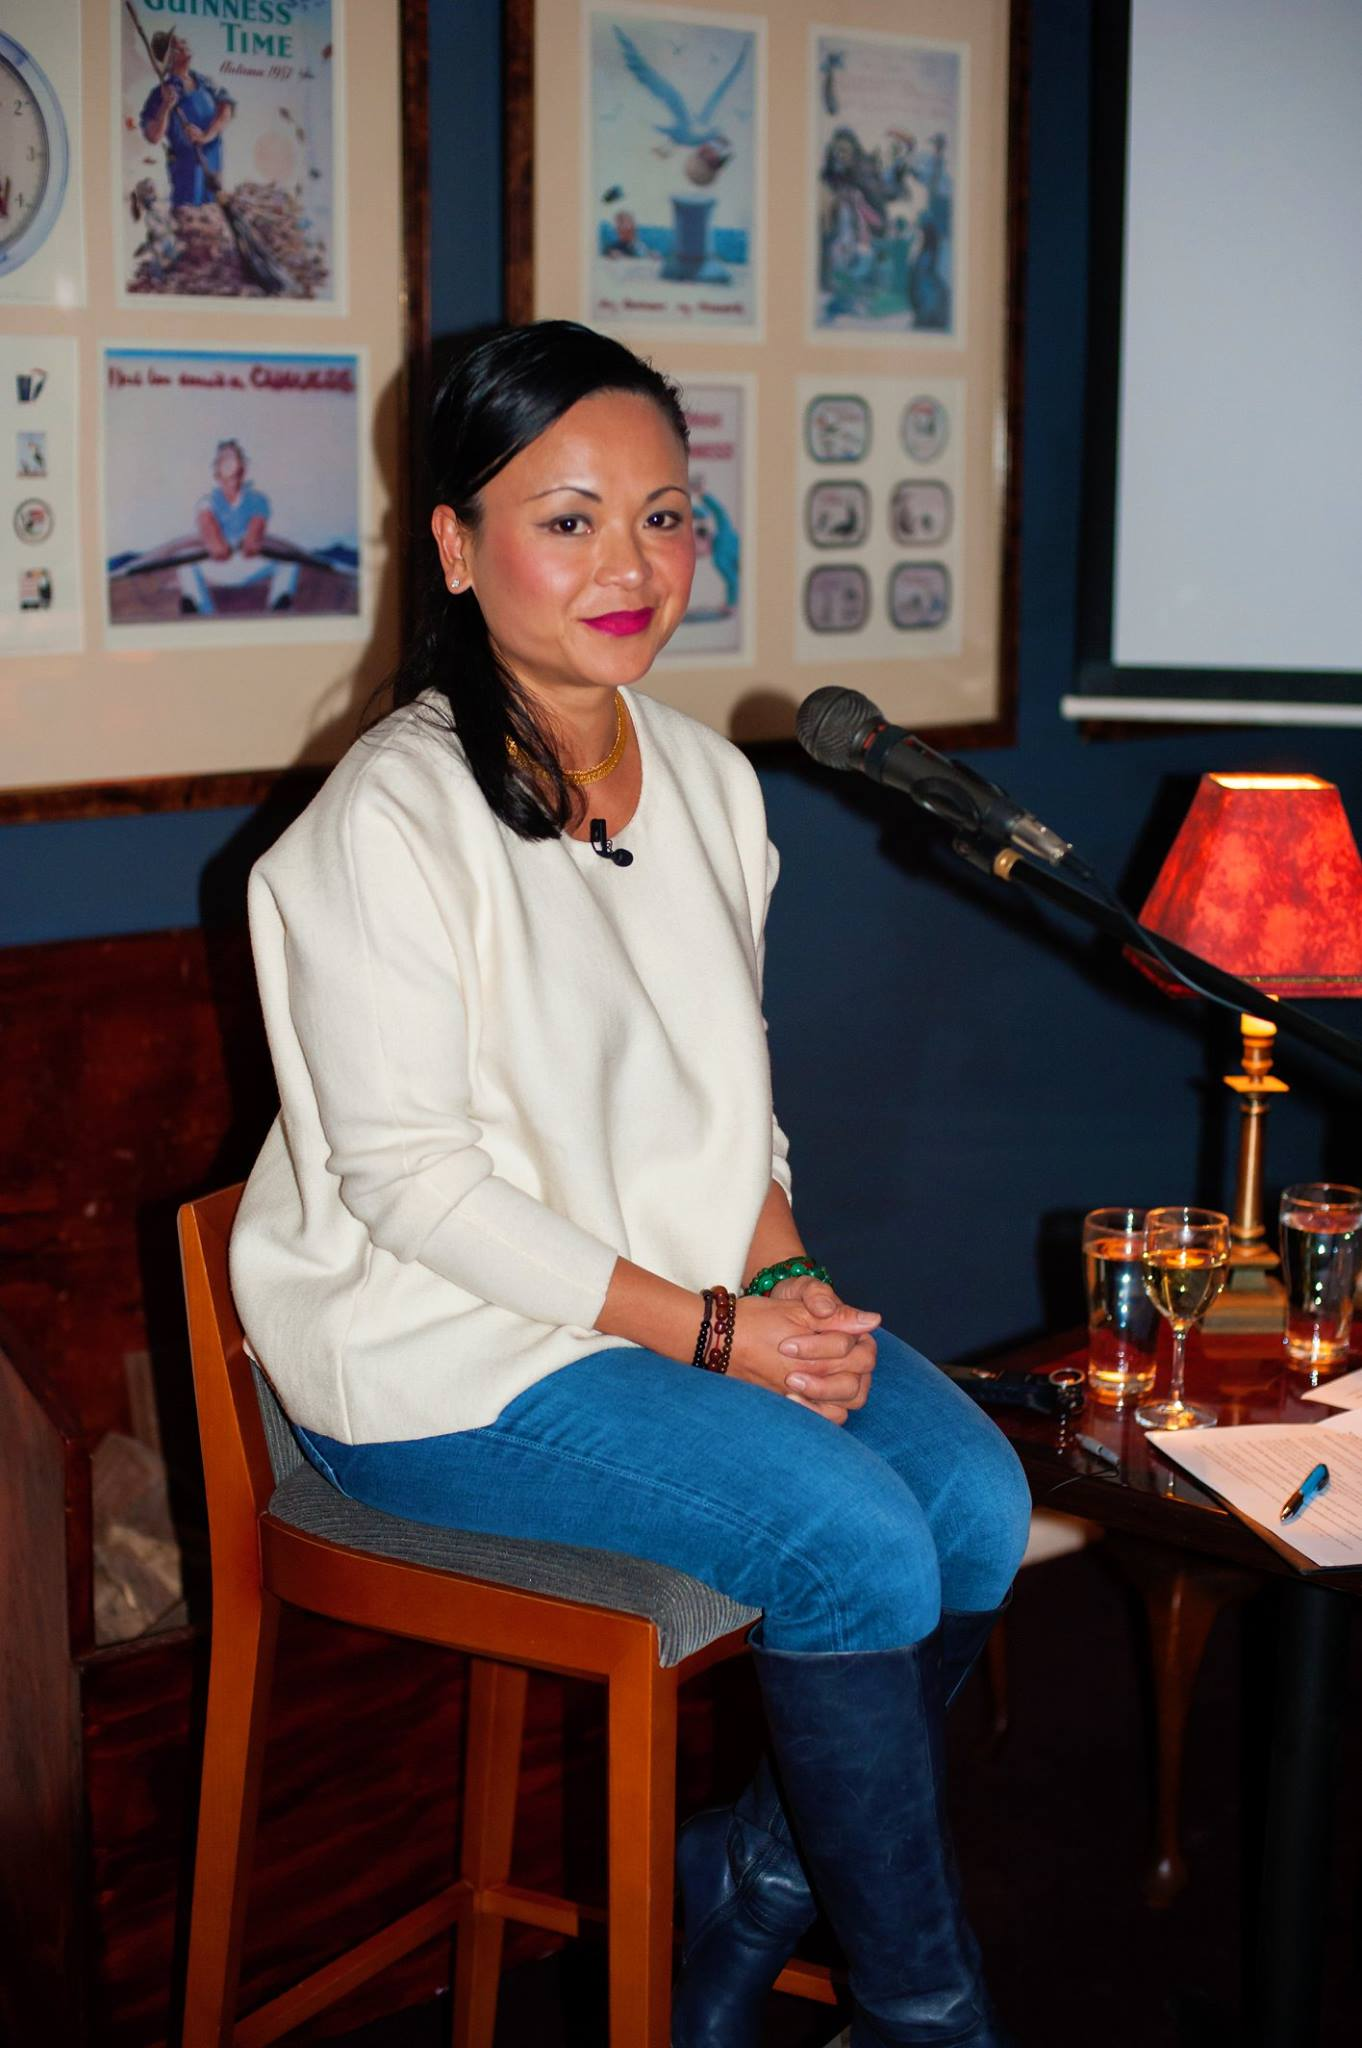 Our magnificent guest presenter, Pauline Nguyen Speaks, poised and ready to go, at our recent Mama Creatives evening event, in her honour.